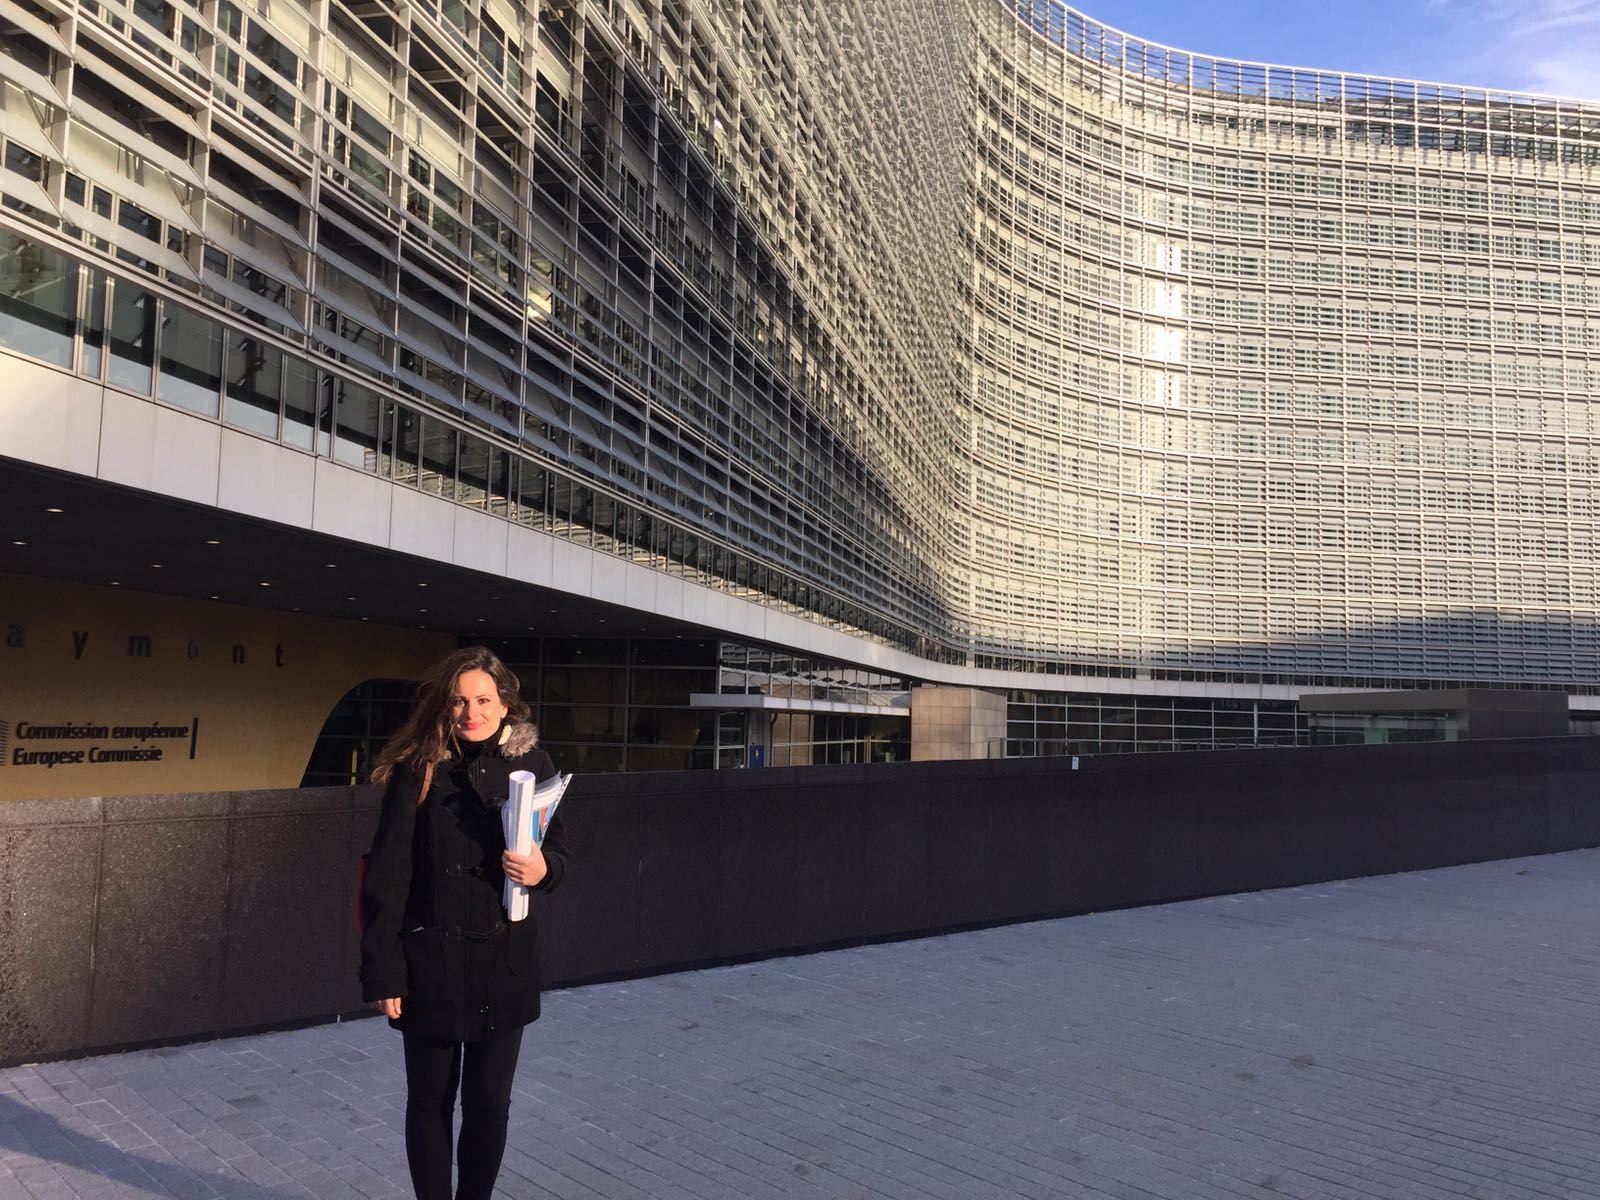 Laura Garau Contreras (pictured) will assume the management of the new ANPIER office in Brussels. Credit: ANPIER